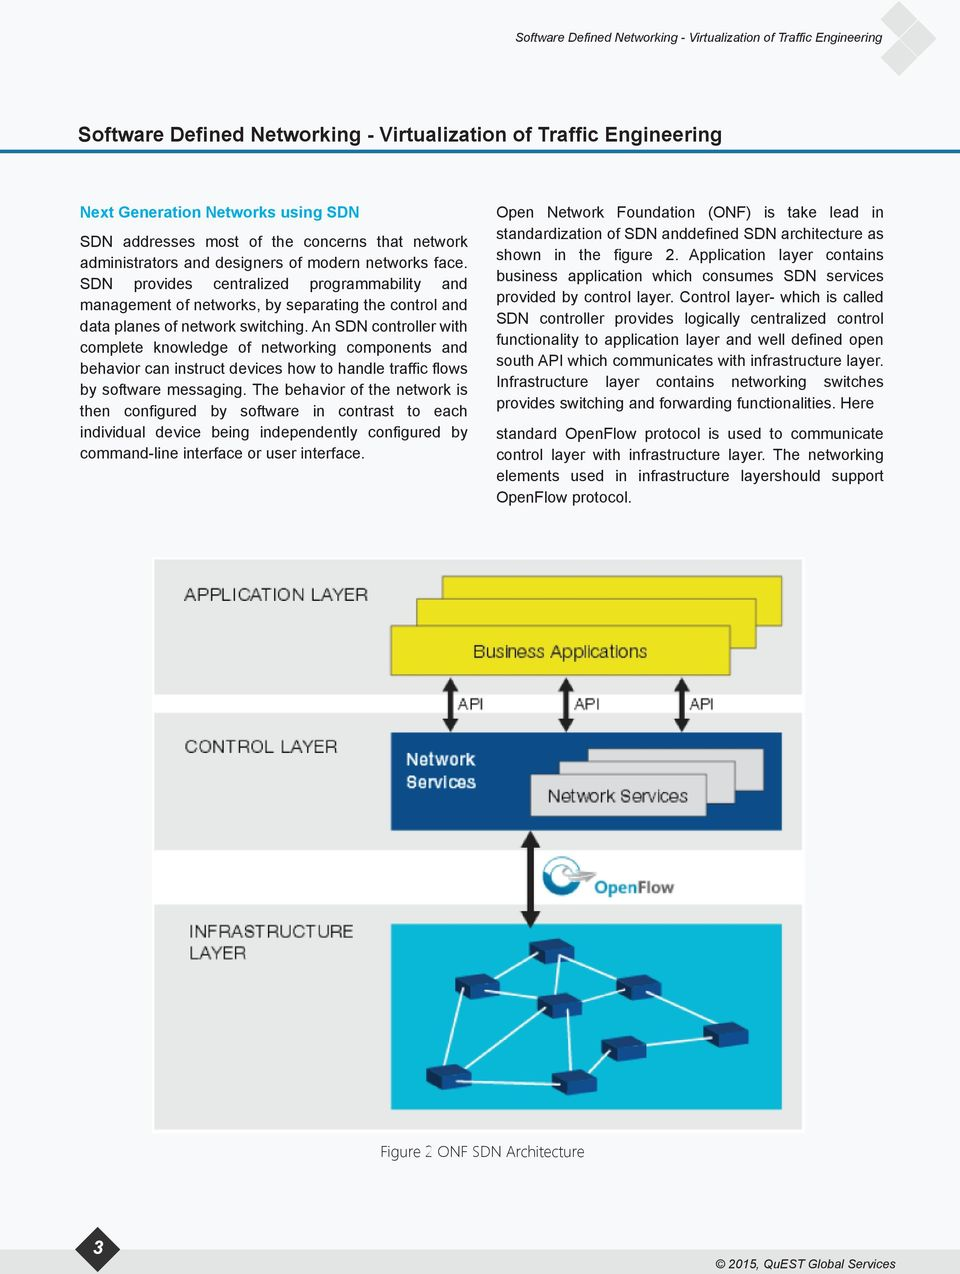 An SDN controller with complete knowledge of networking components and behavior can instruct devices how to handle traffic flows by software messaging.